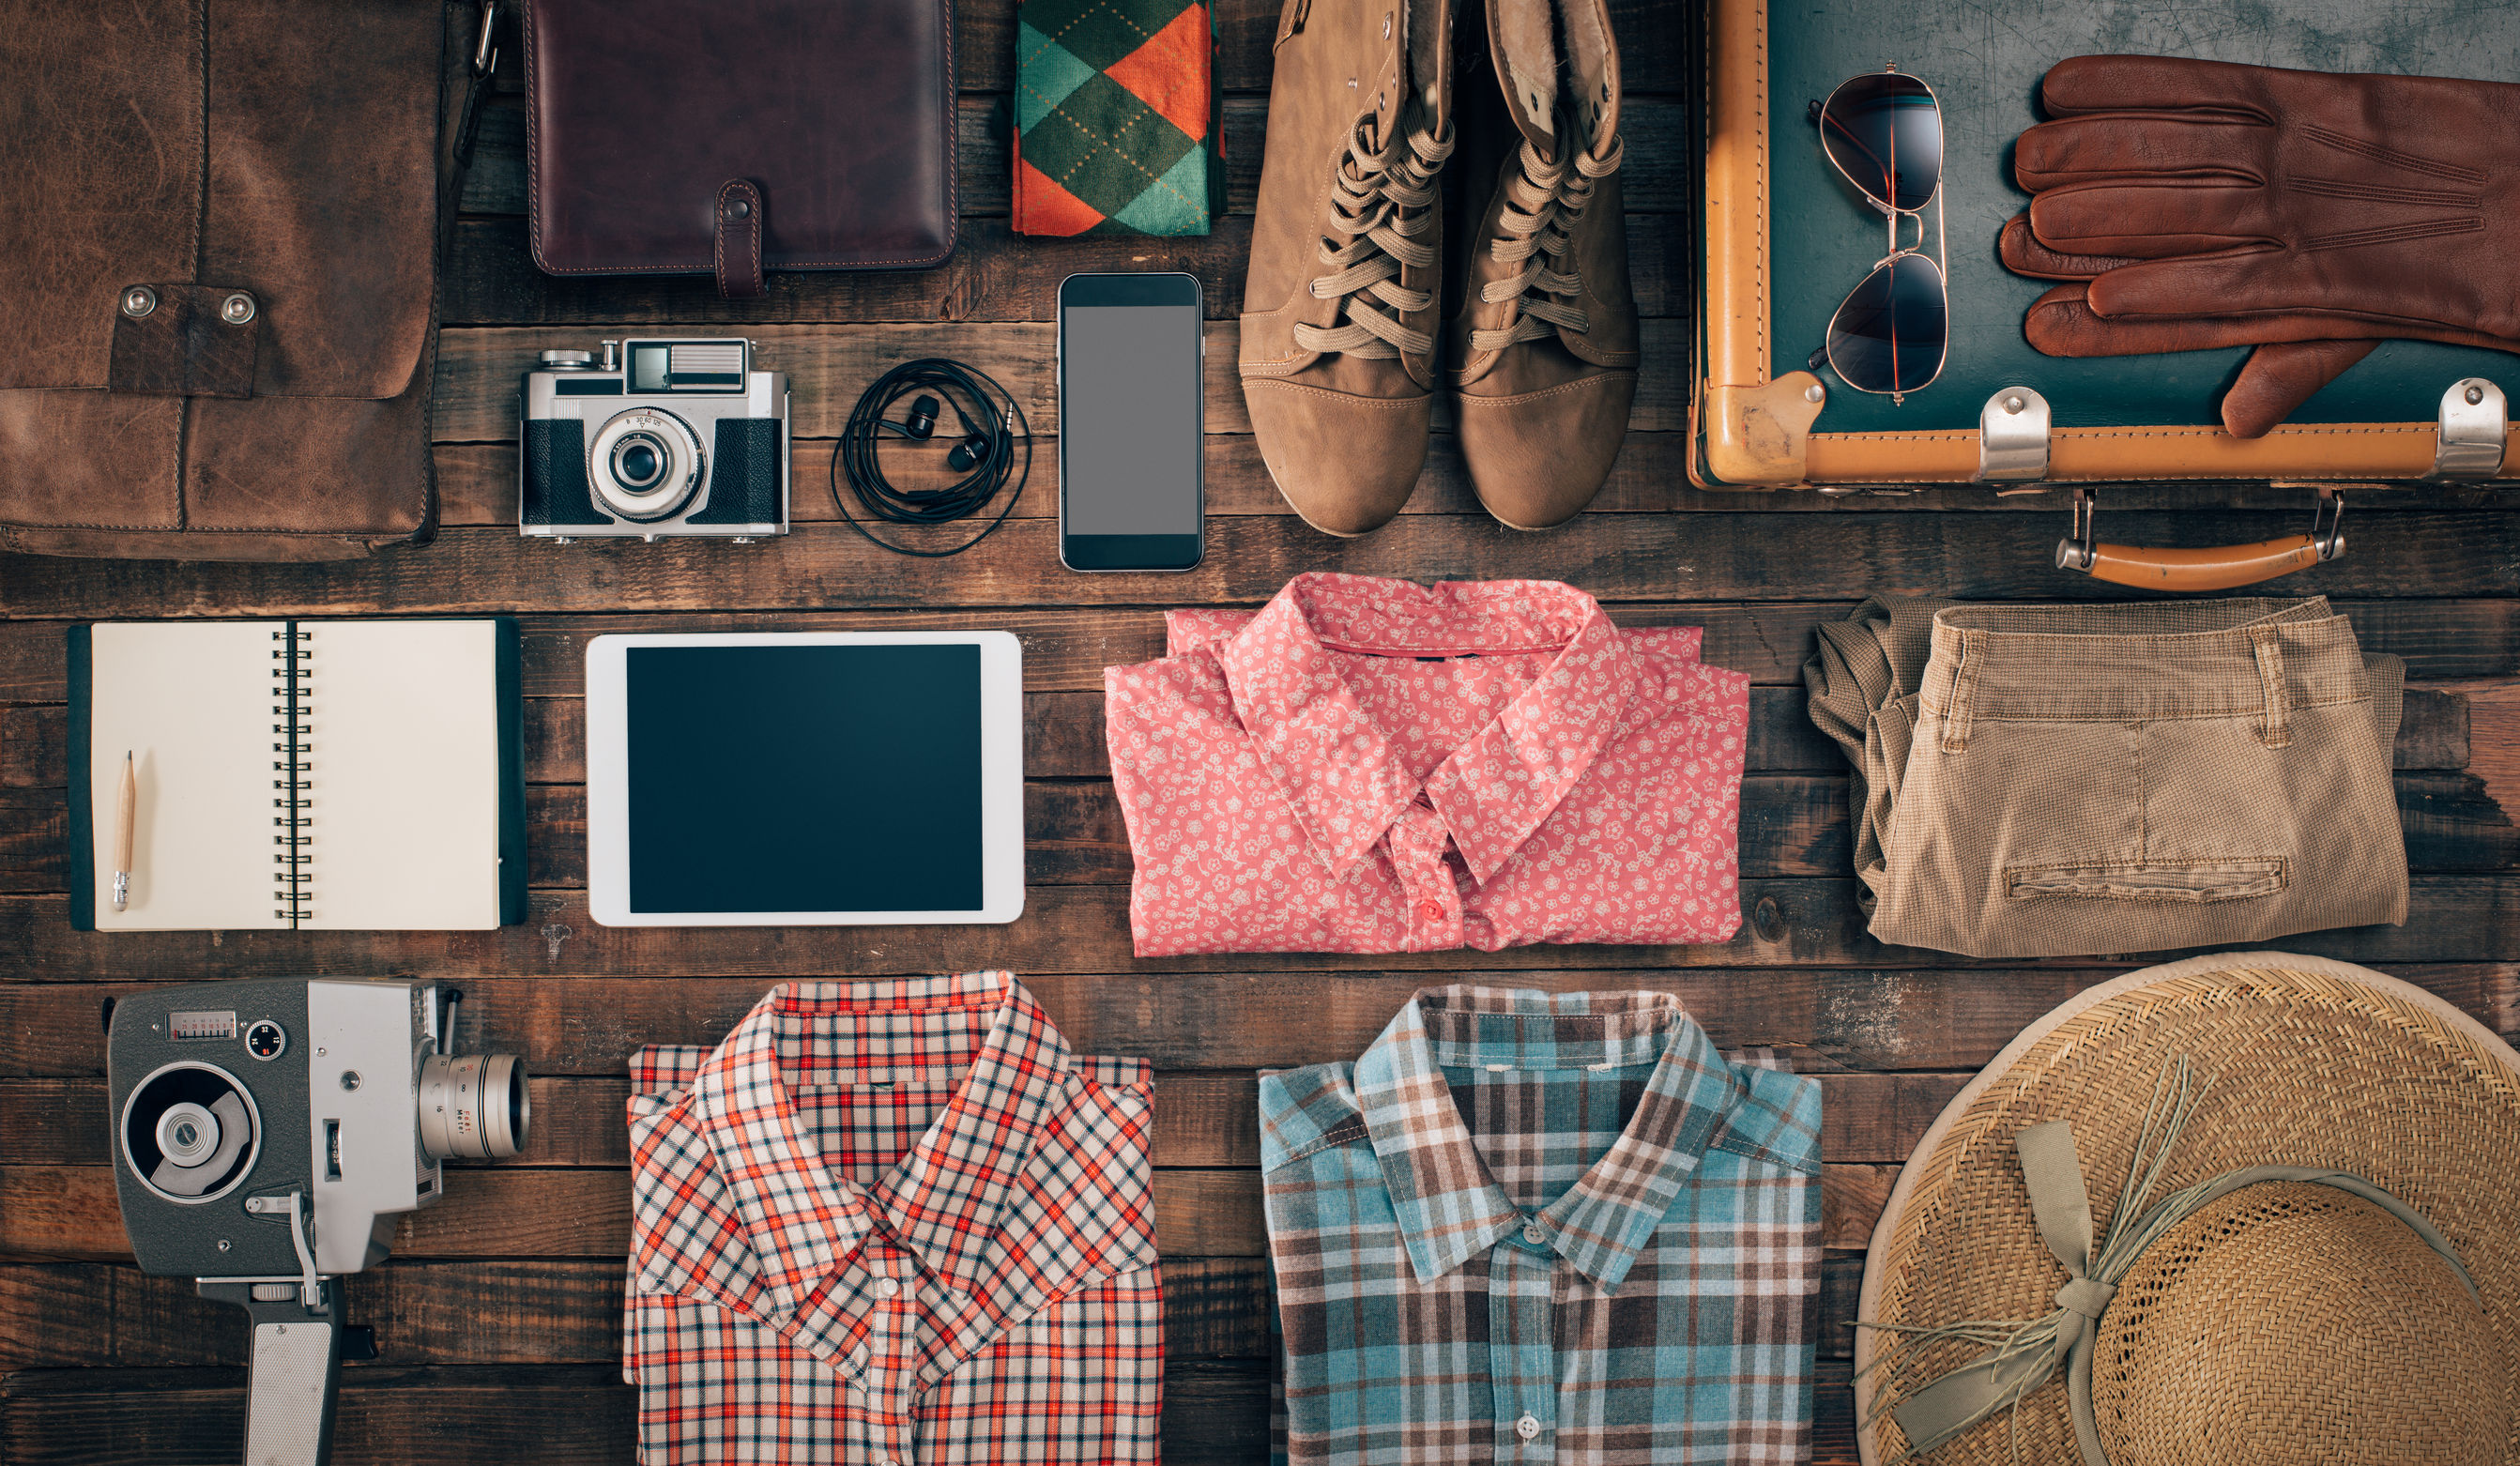 42512672 - hipster vintage accessories and clothing on a wooden table before packing, travel and vacations concept, top view